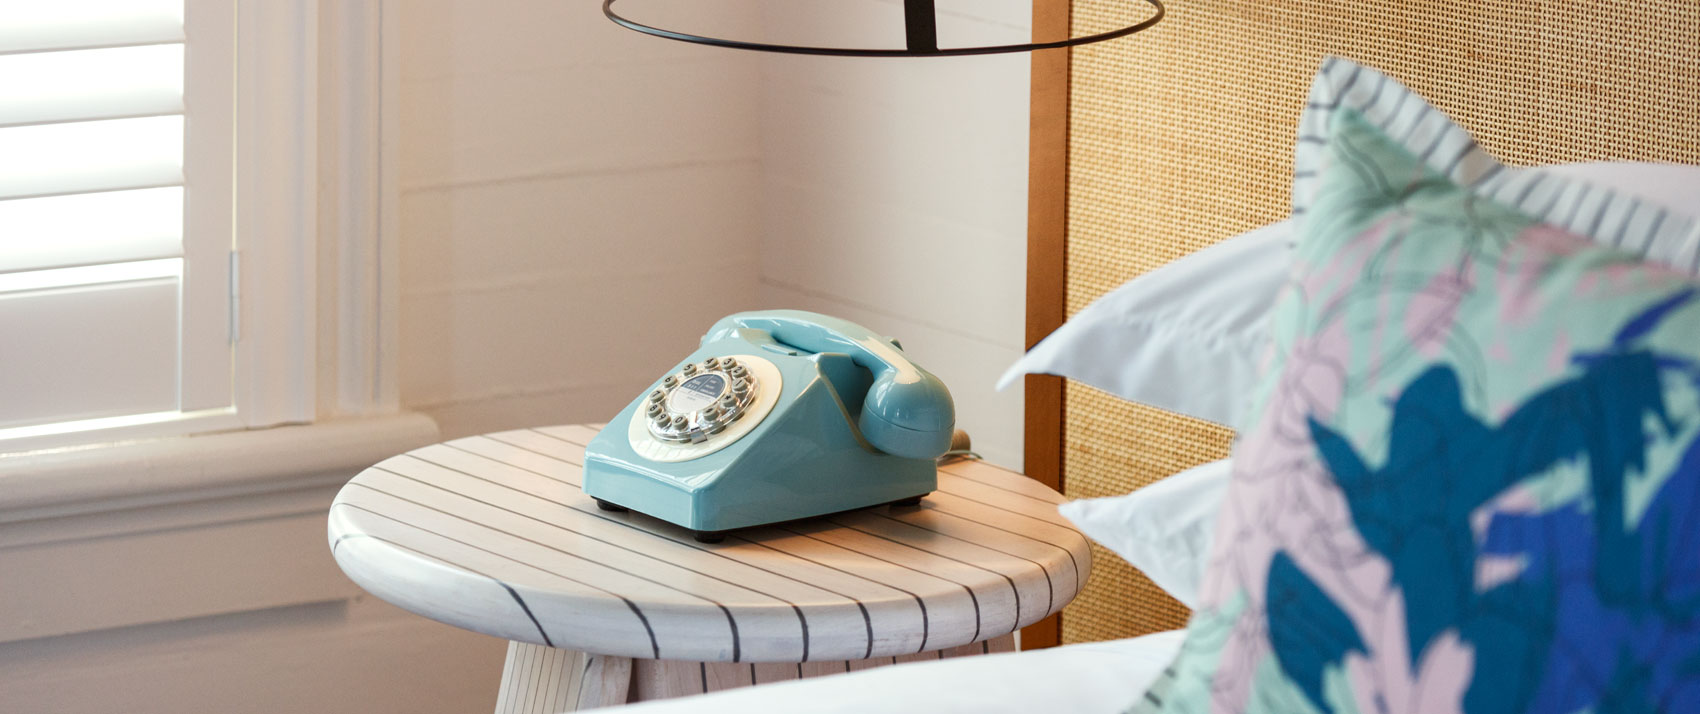 ridley house guestroom bed with a teal vintage telephone